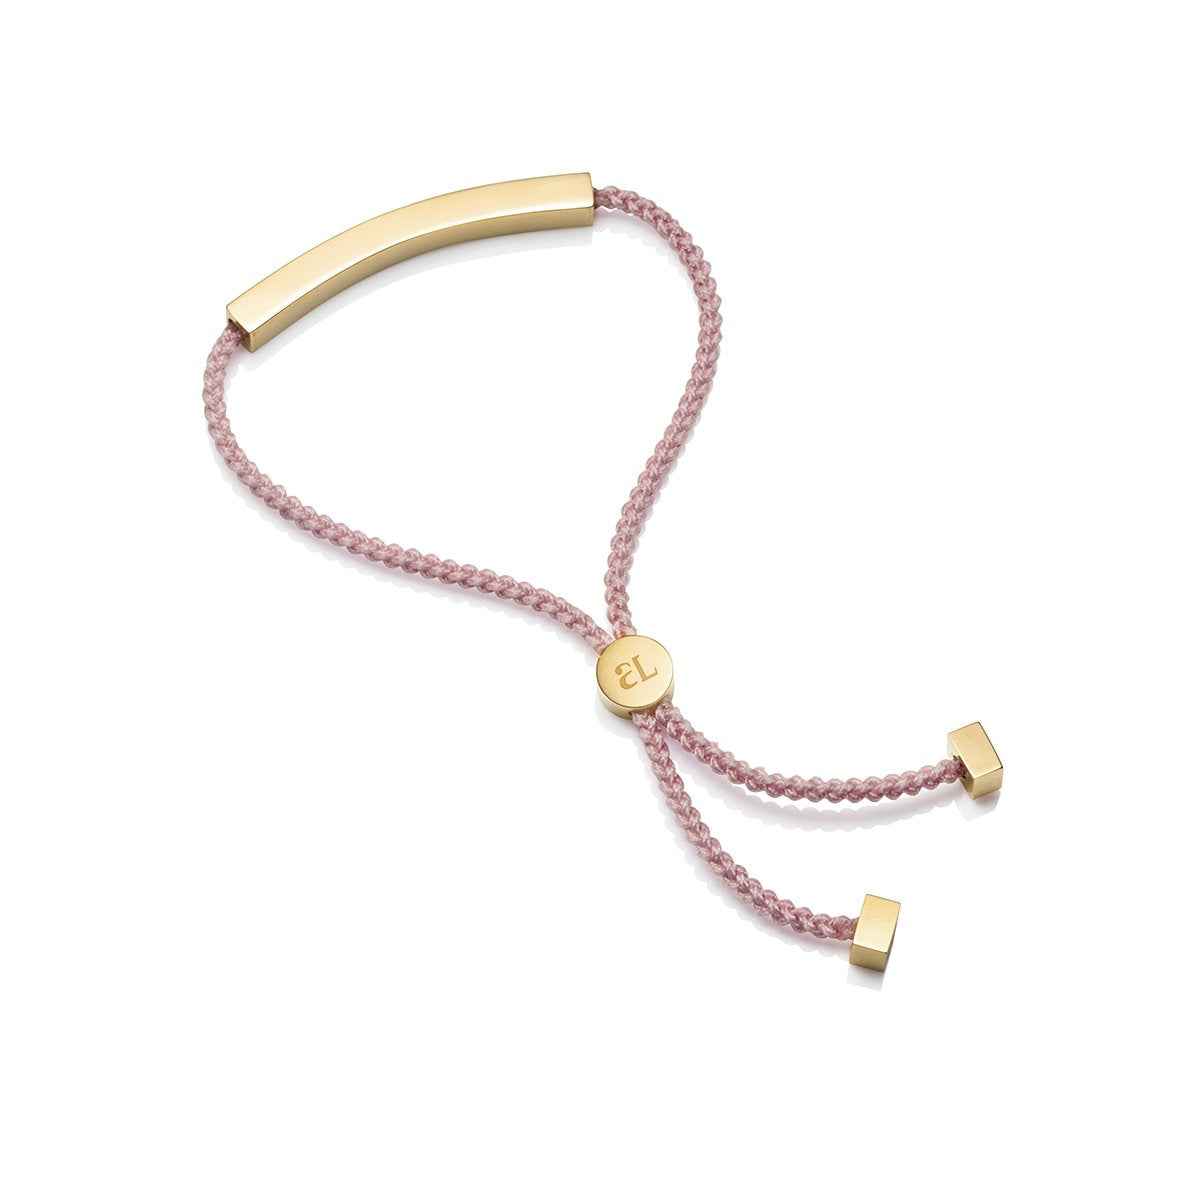 Blush Cord Personalise Bracelet (Yellow Gold)